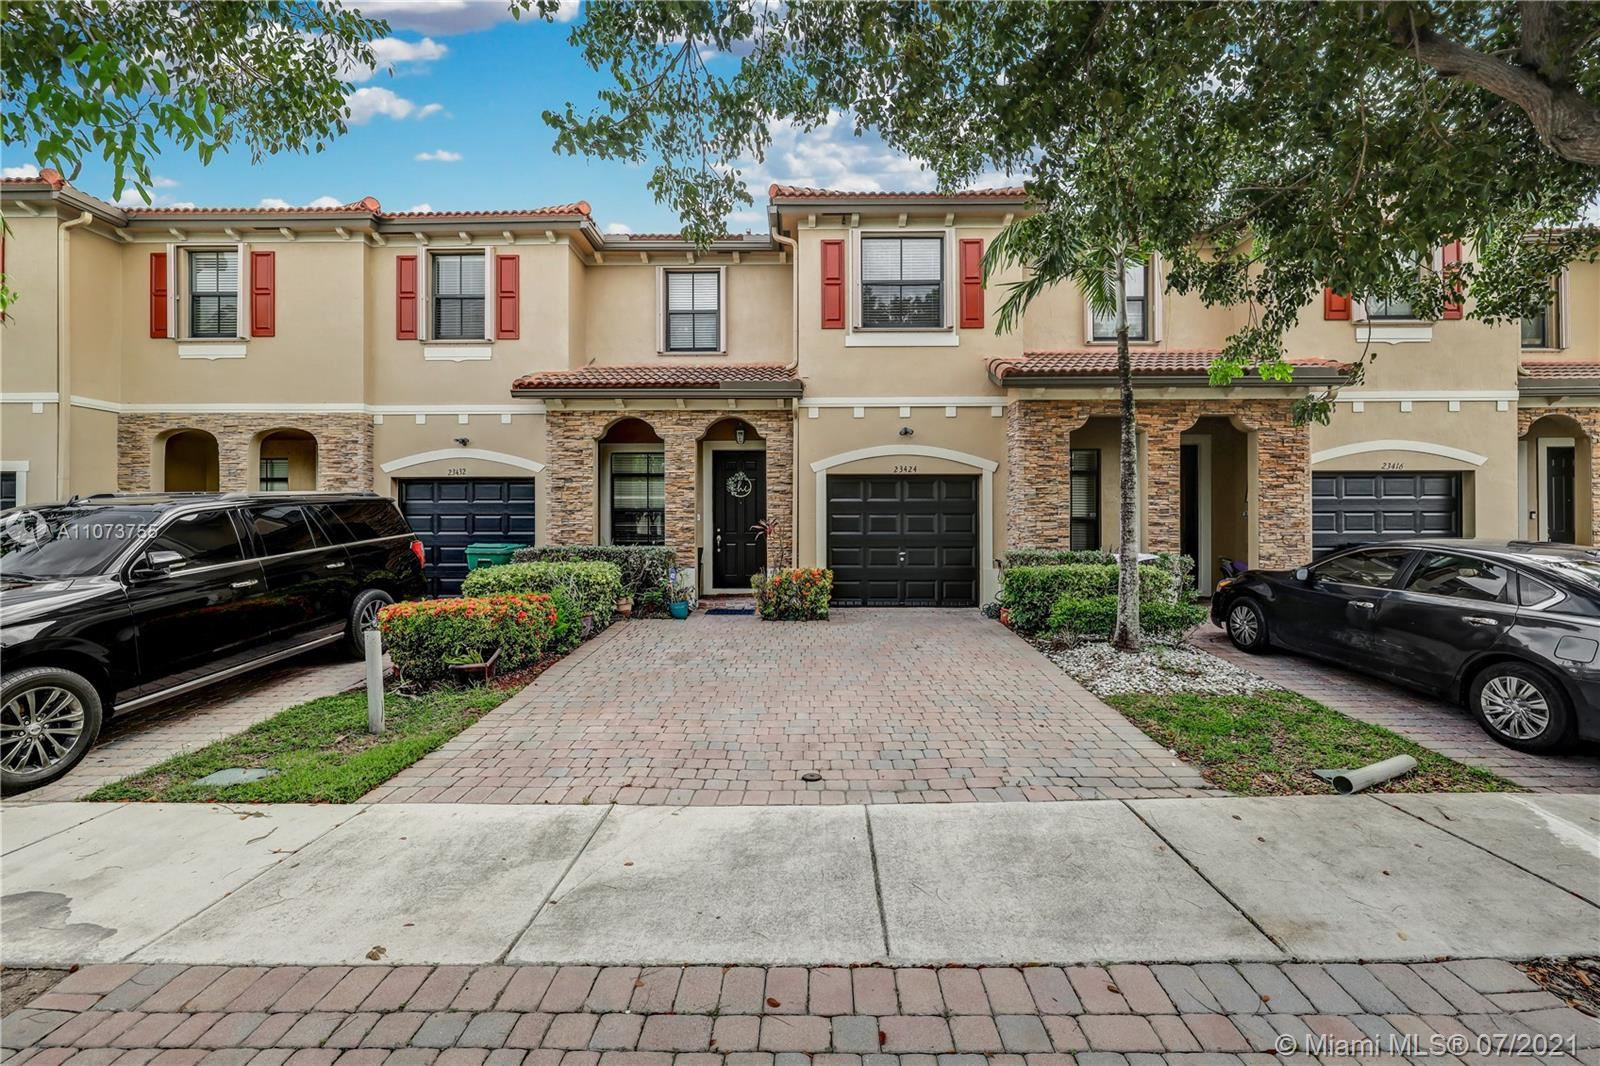 23424 SW 113th Ave #23424, Homestead, FL 33032 - #: A11073755